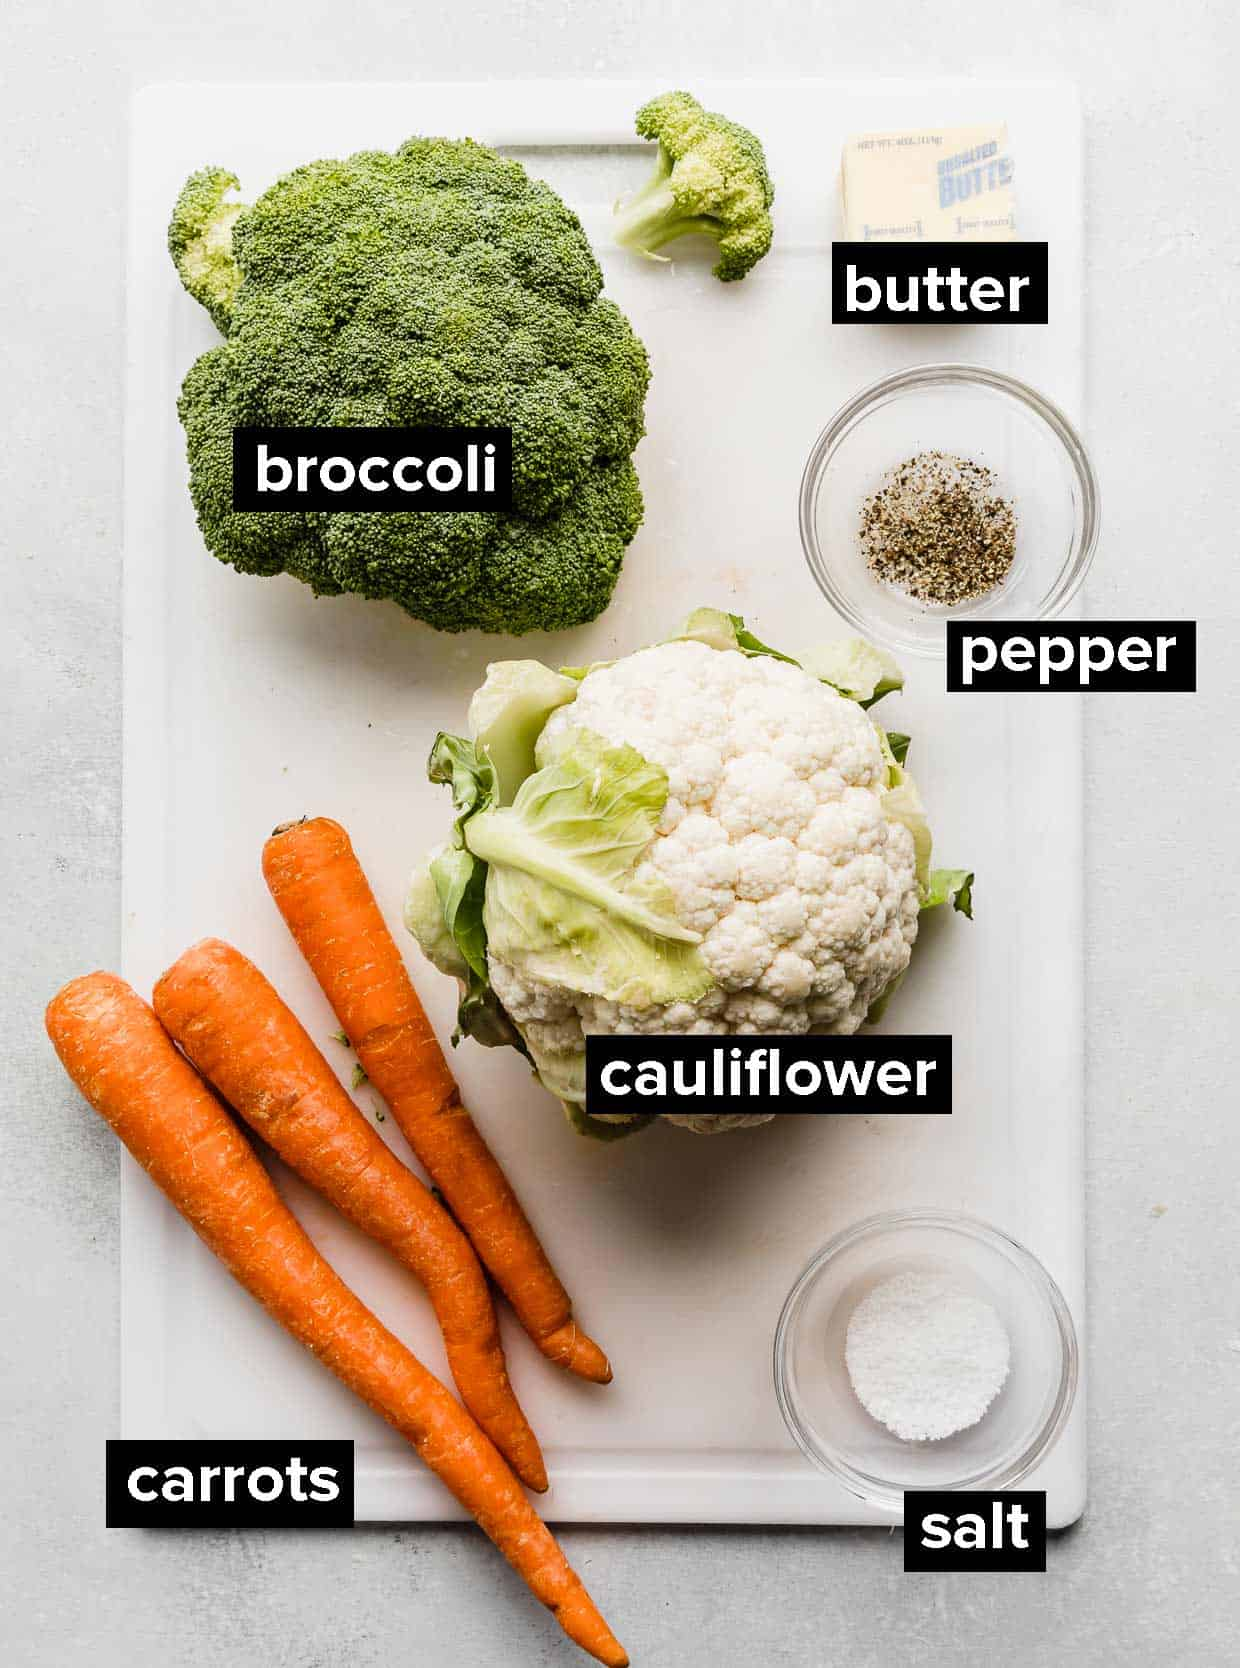 Ingredients used to make buttered vegetables on a white cutting board.